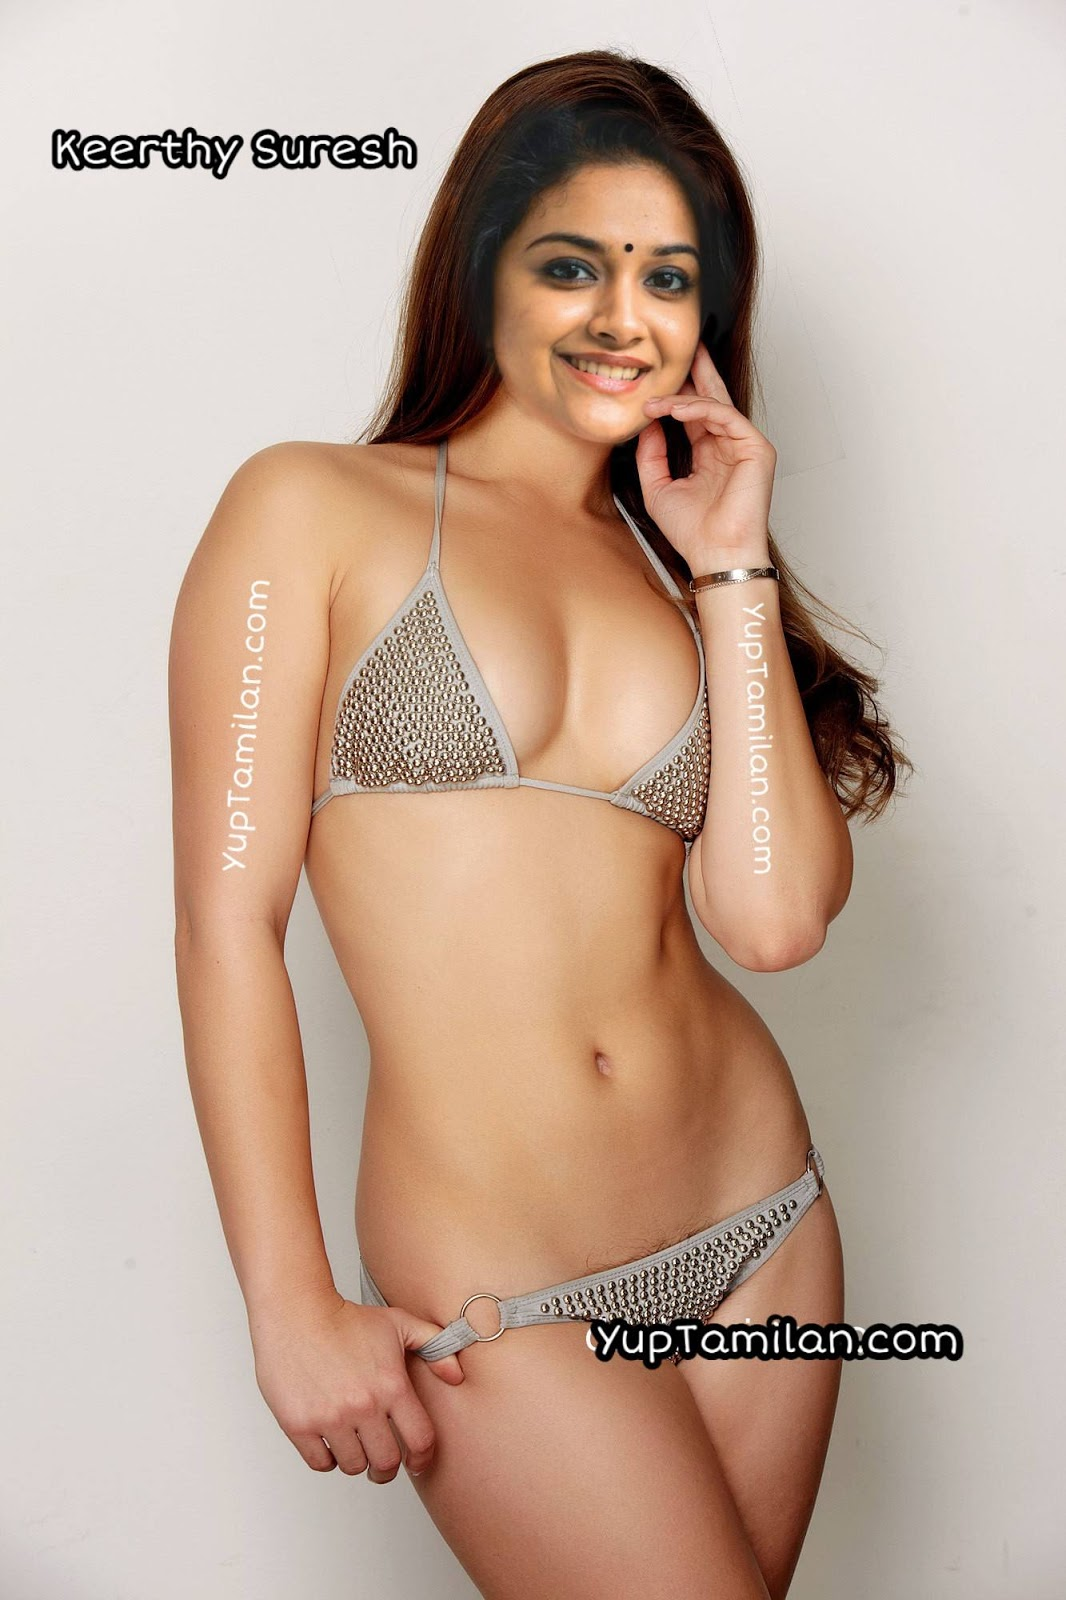 Keerthy Suresh sexy fake edited picture in Lingerie